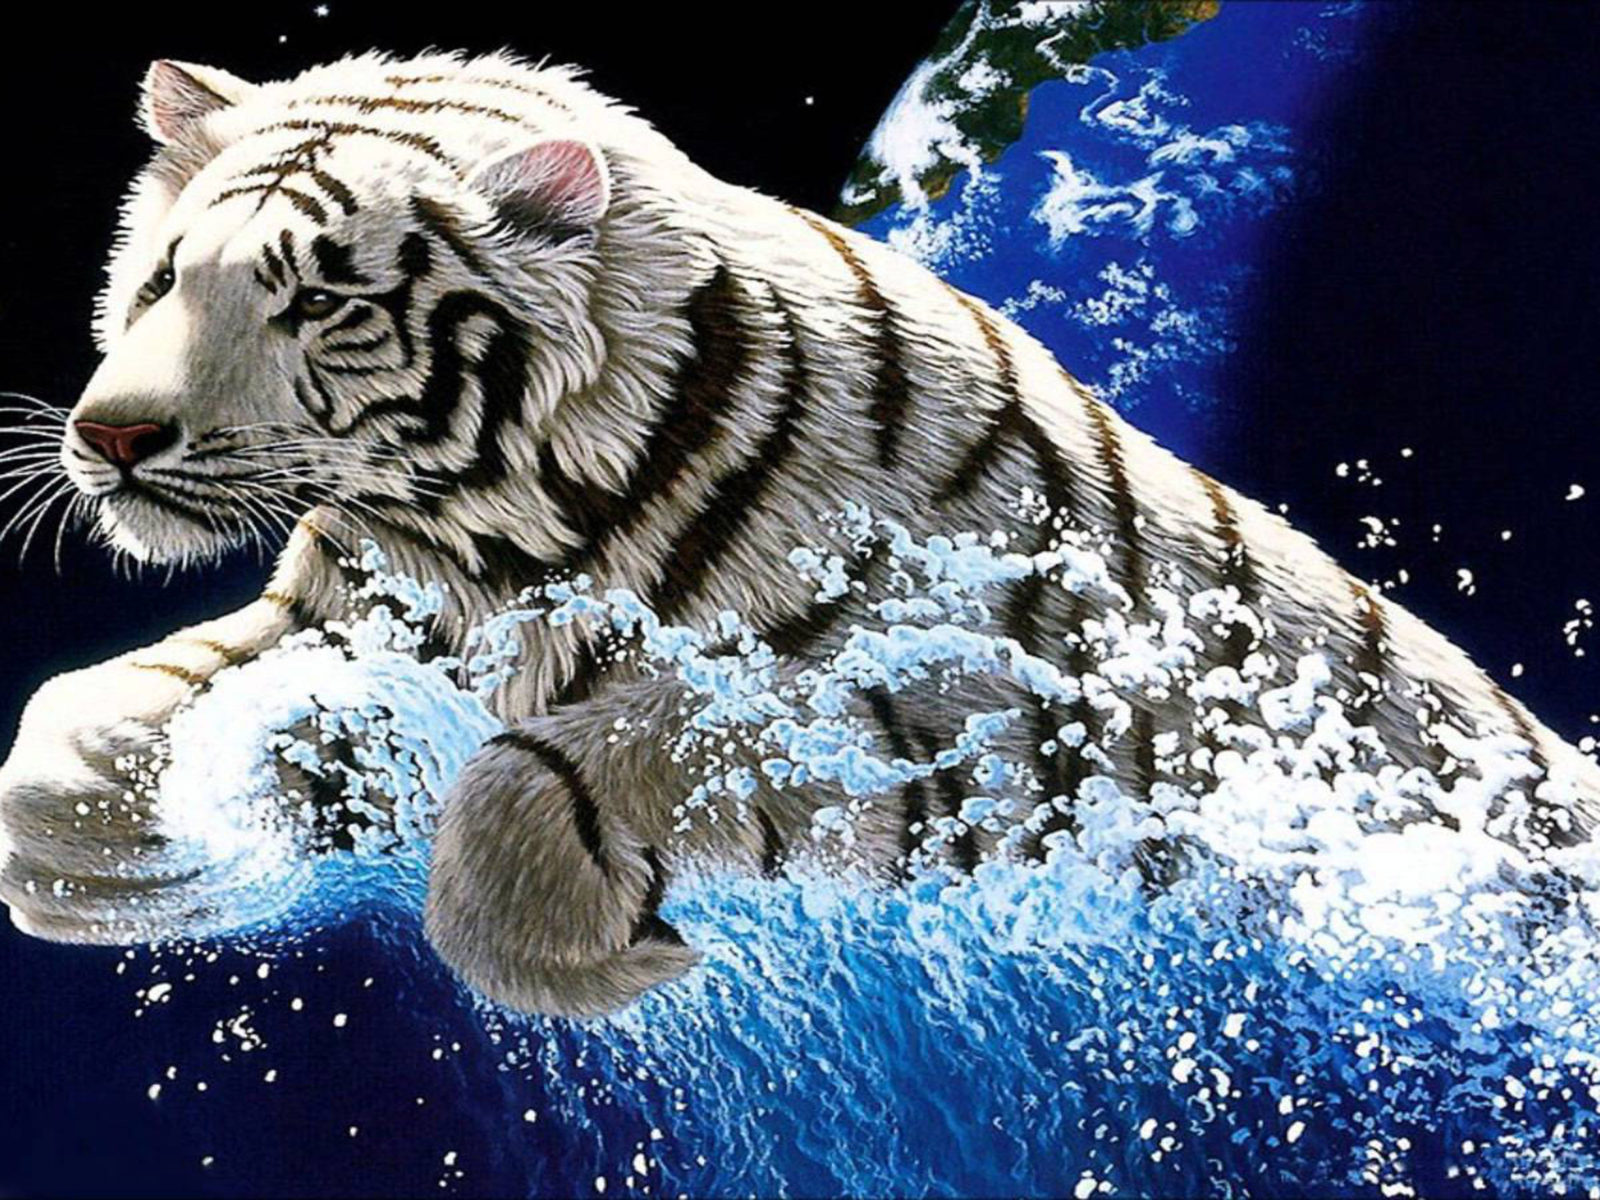 Free Download Cute Wallpapers For Android White Tiger Widescreen 3840x2400 Hd Wallpapers